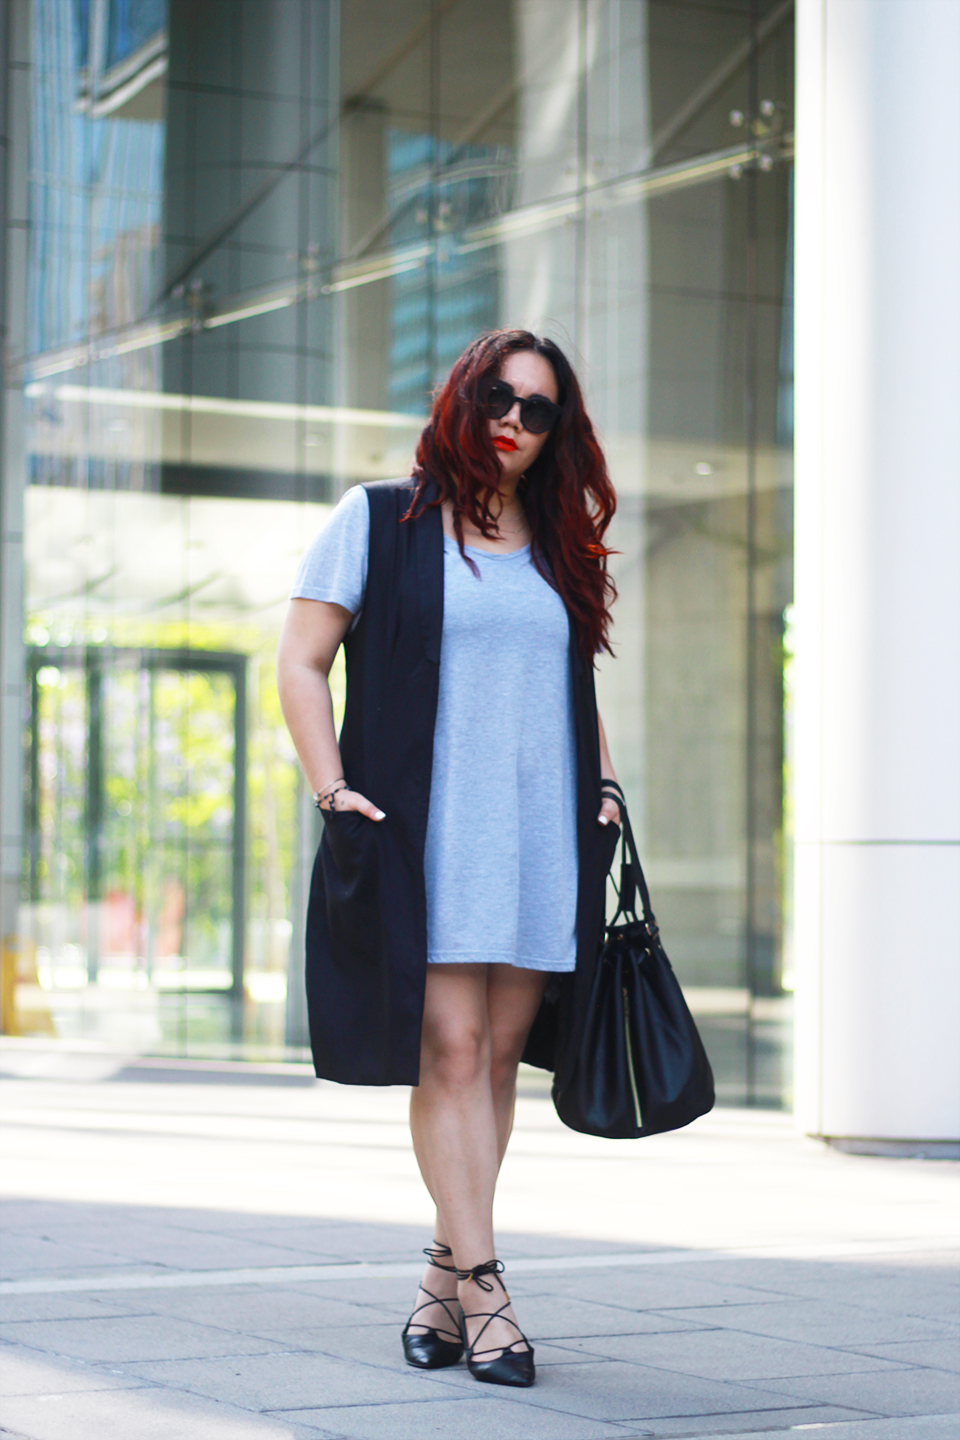 blogger-mexicana-lace-up-flats-bucket-bag-sleveless-blazer-gray-dress-look-chic-santiago-street-style-plus-size